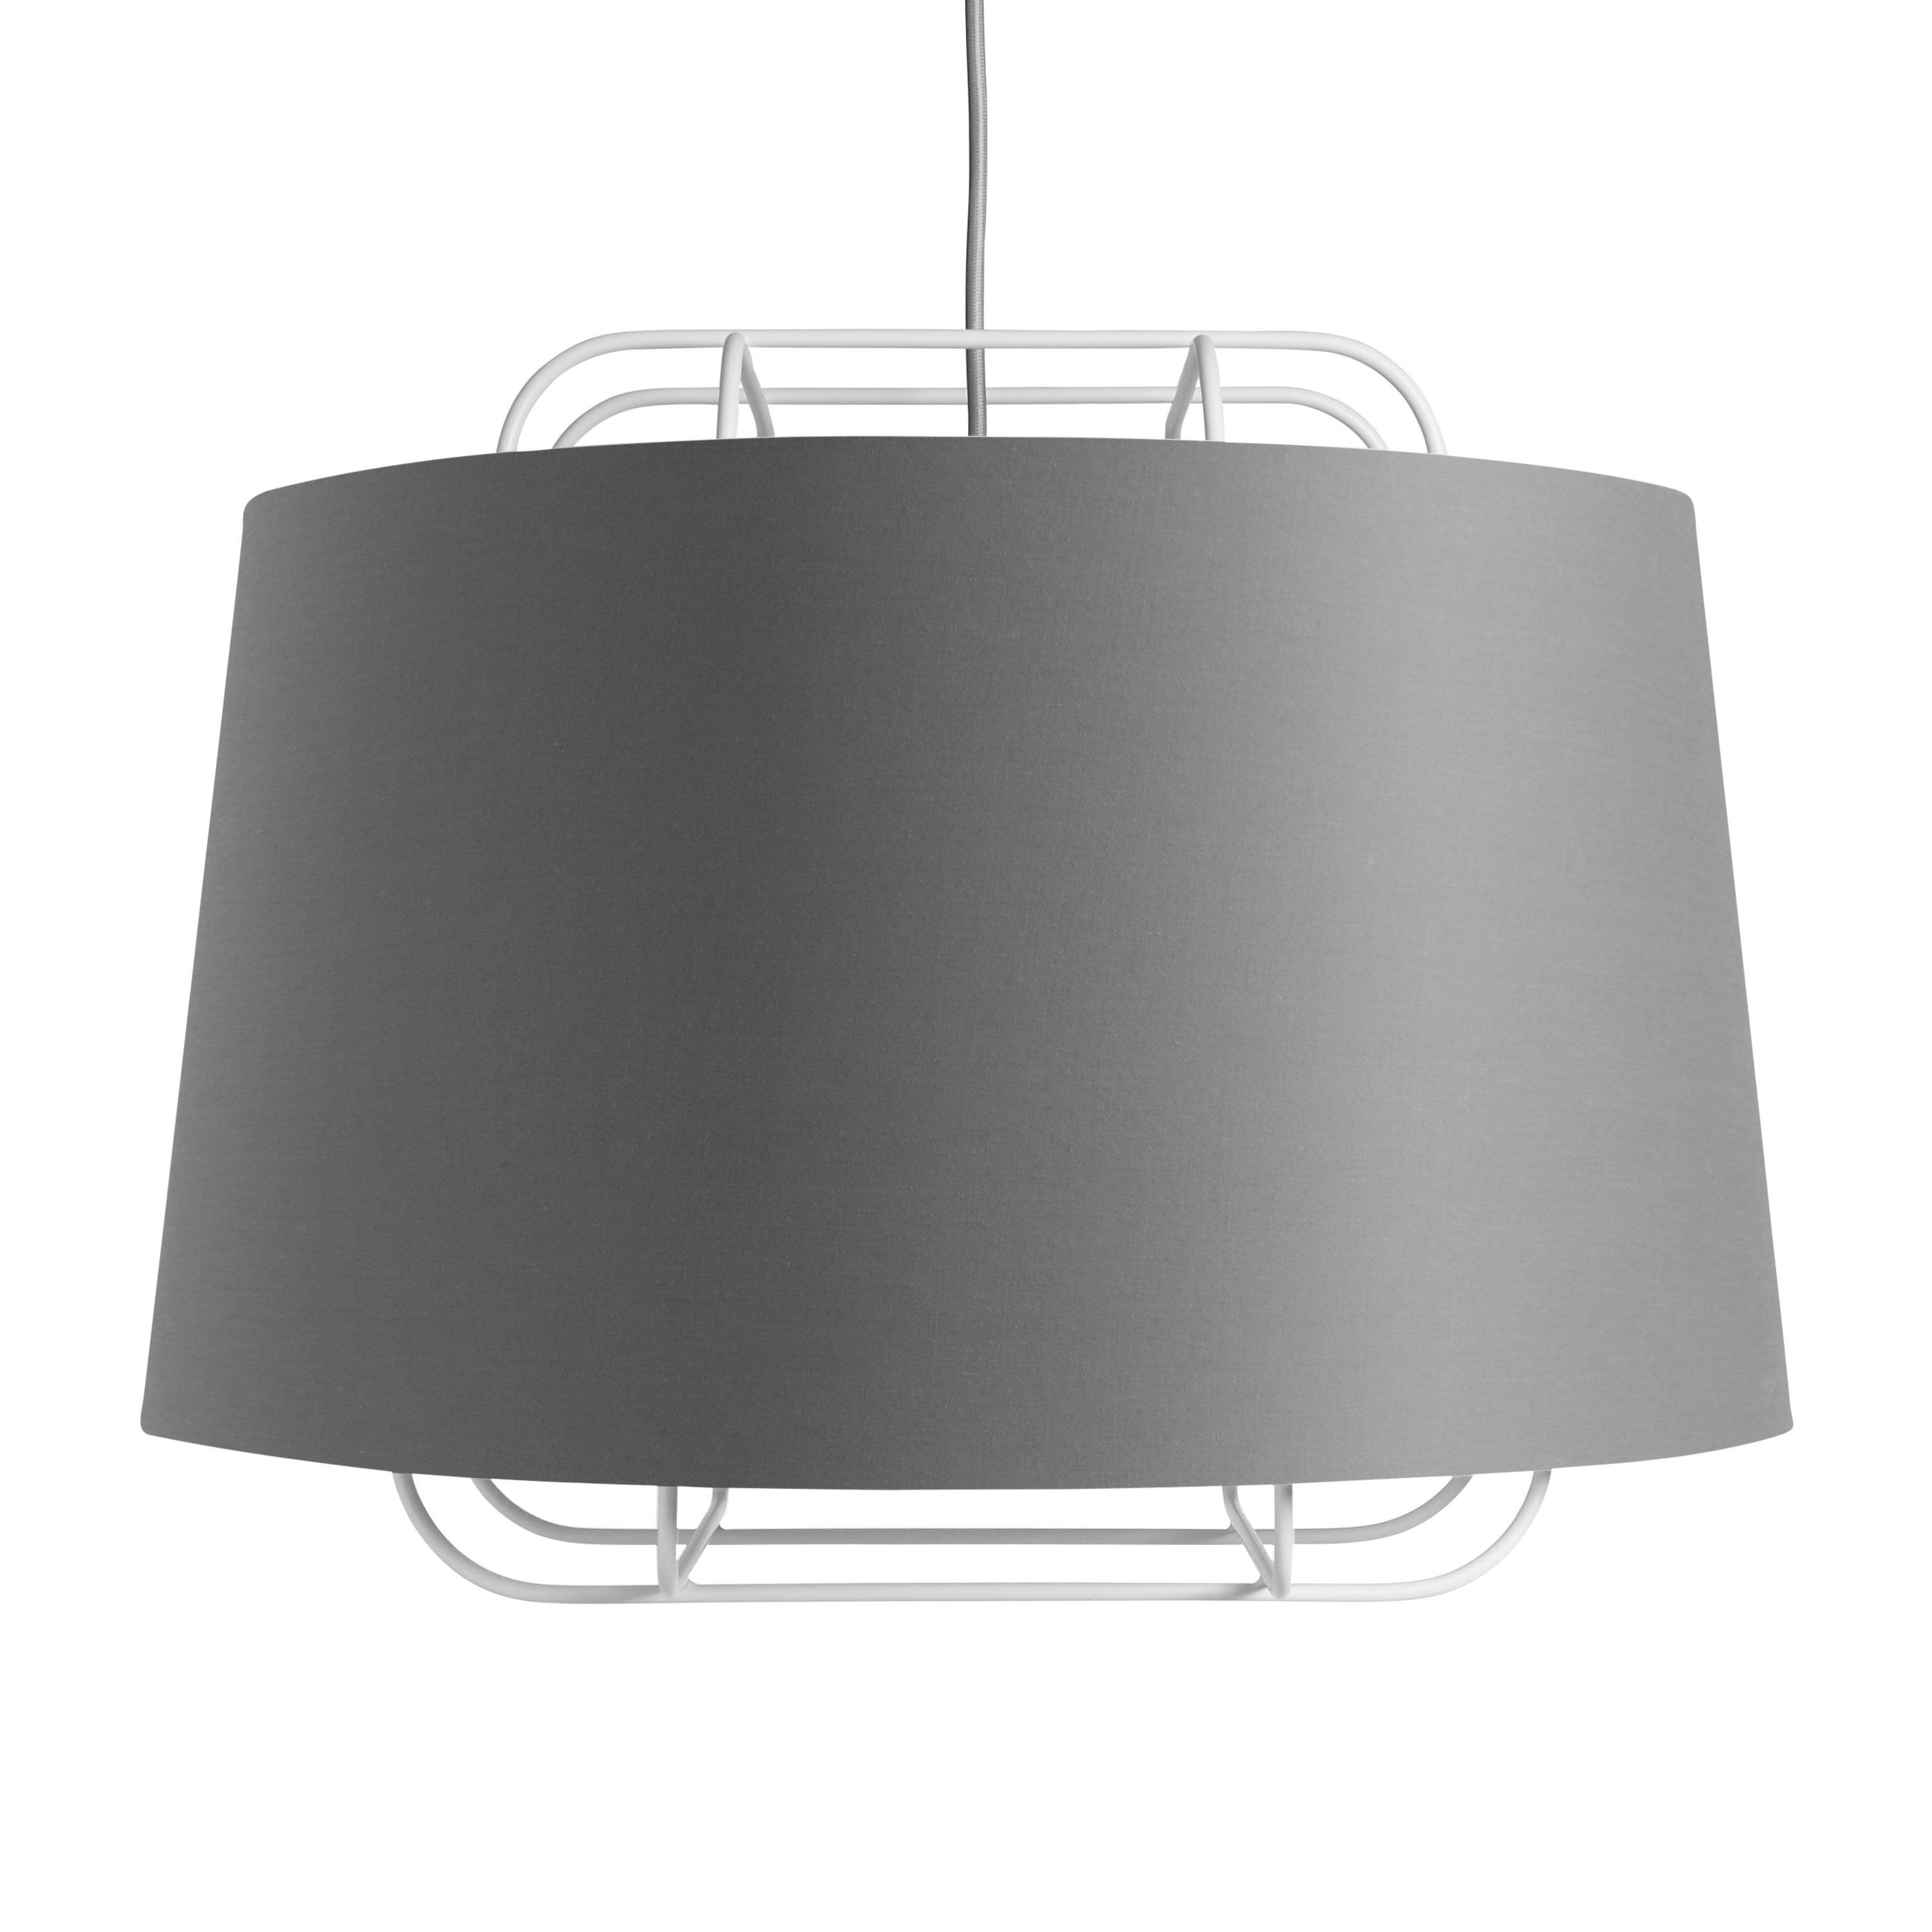 Perimeter large pendant light area perimeter large pendant light aloadofball